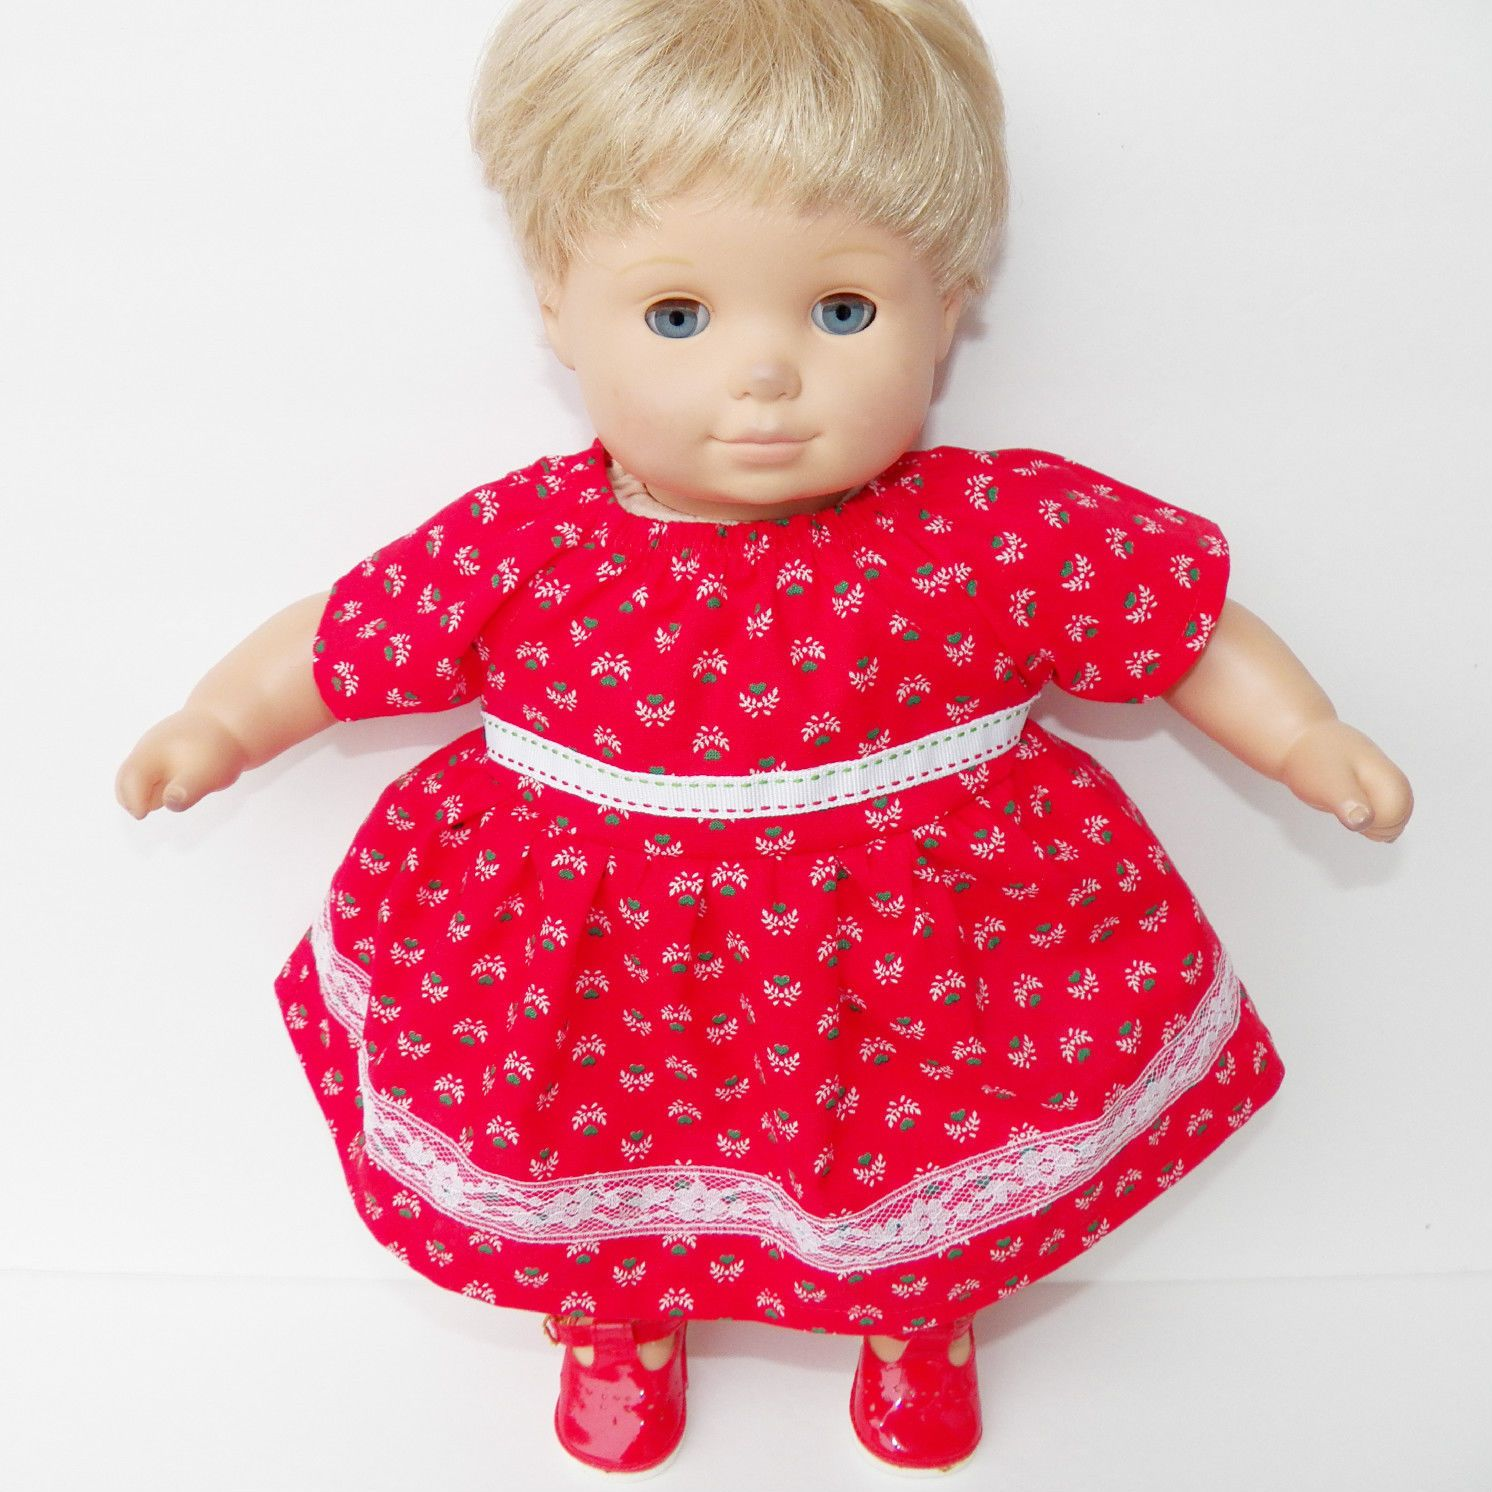 bitty baby clothes doll girl 15 twin red white green heart flower